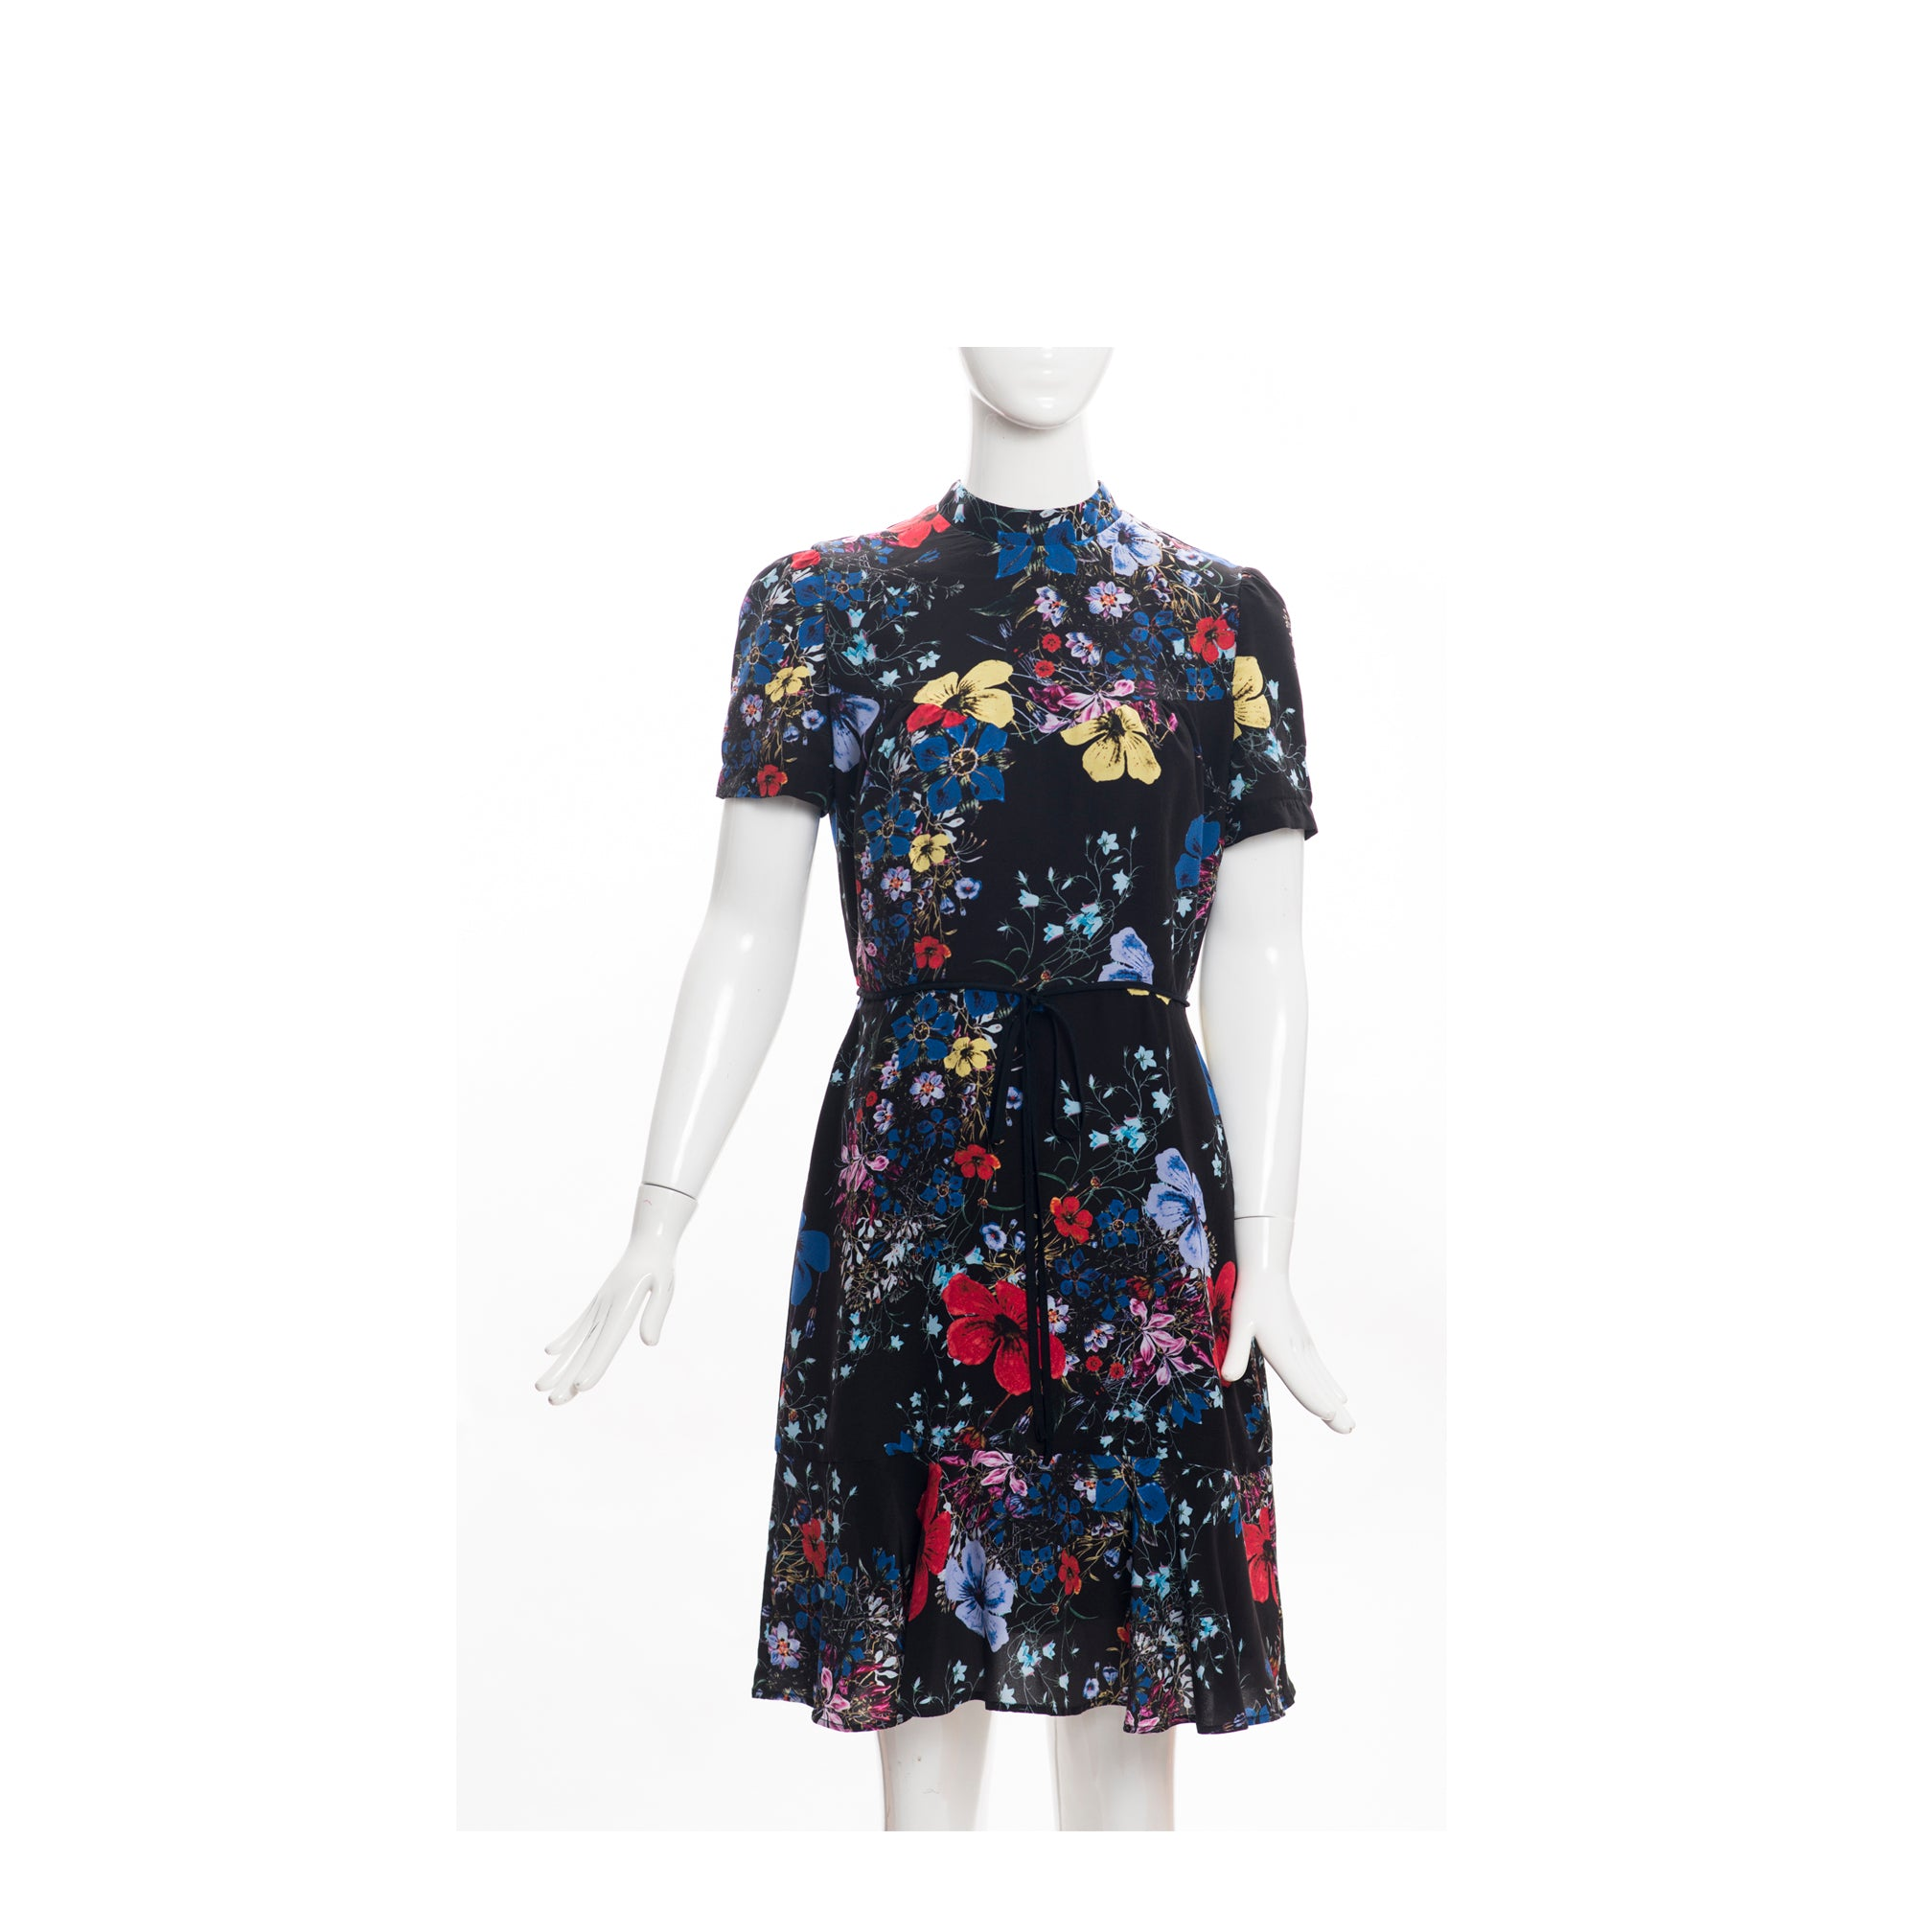 'Sold' $1130 ERDEM Black Carmel Floral Print Short Sleeve Anne Flounce Silk Dress UK 10 US 6